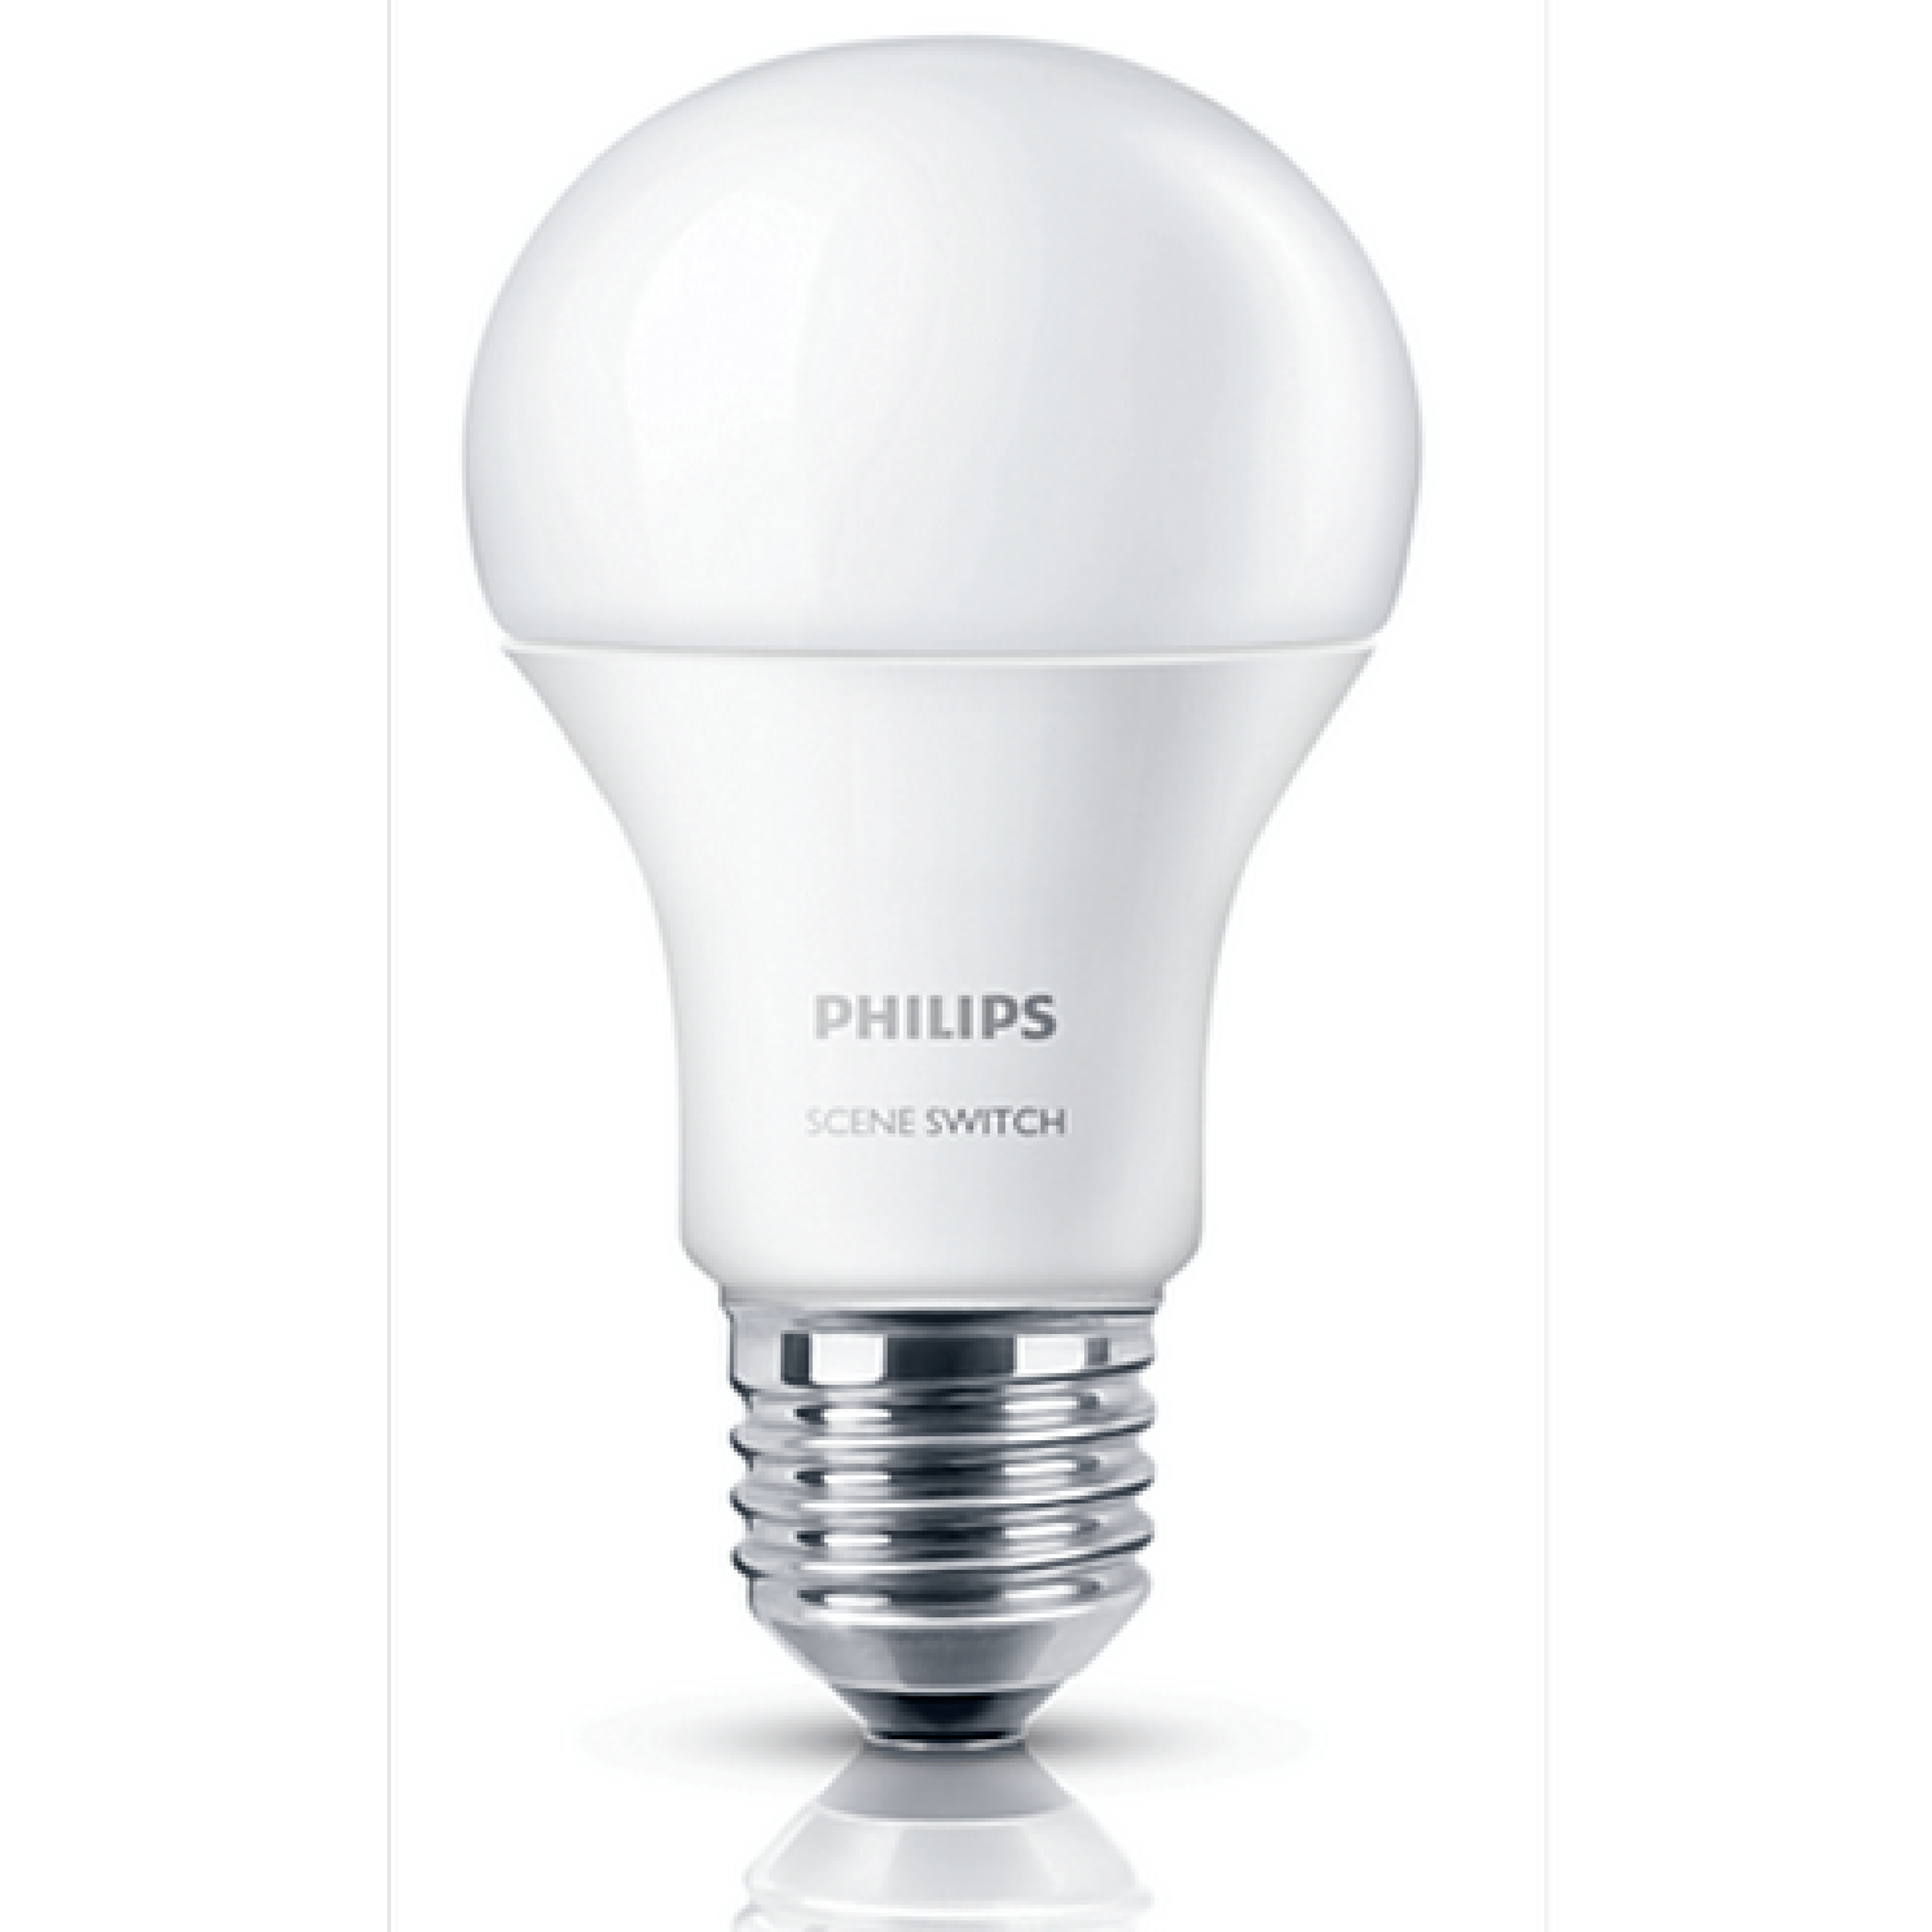 Philips Colour Lamp Philips Led Scene Switch Bulb 9 5w Duo Colour E27 6 Pack